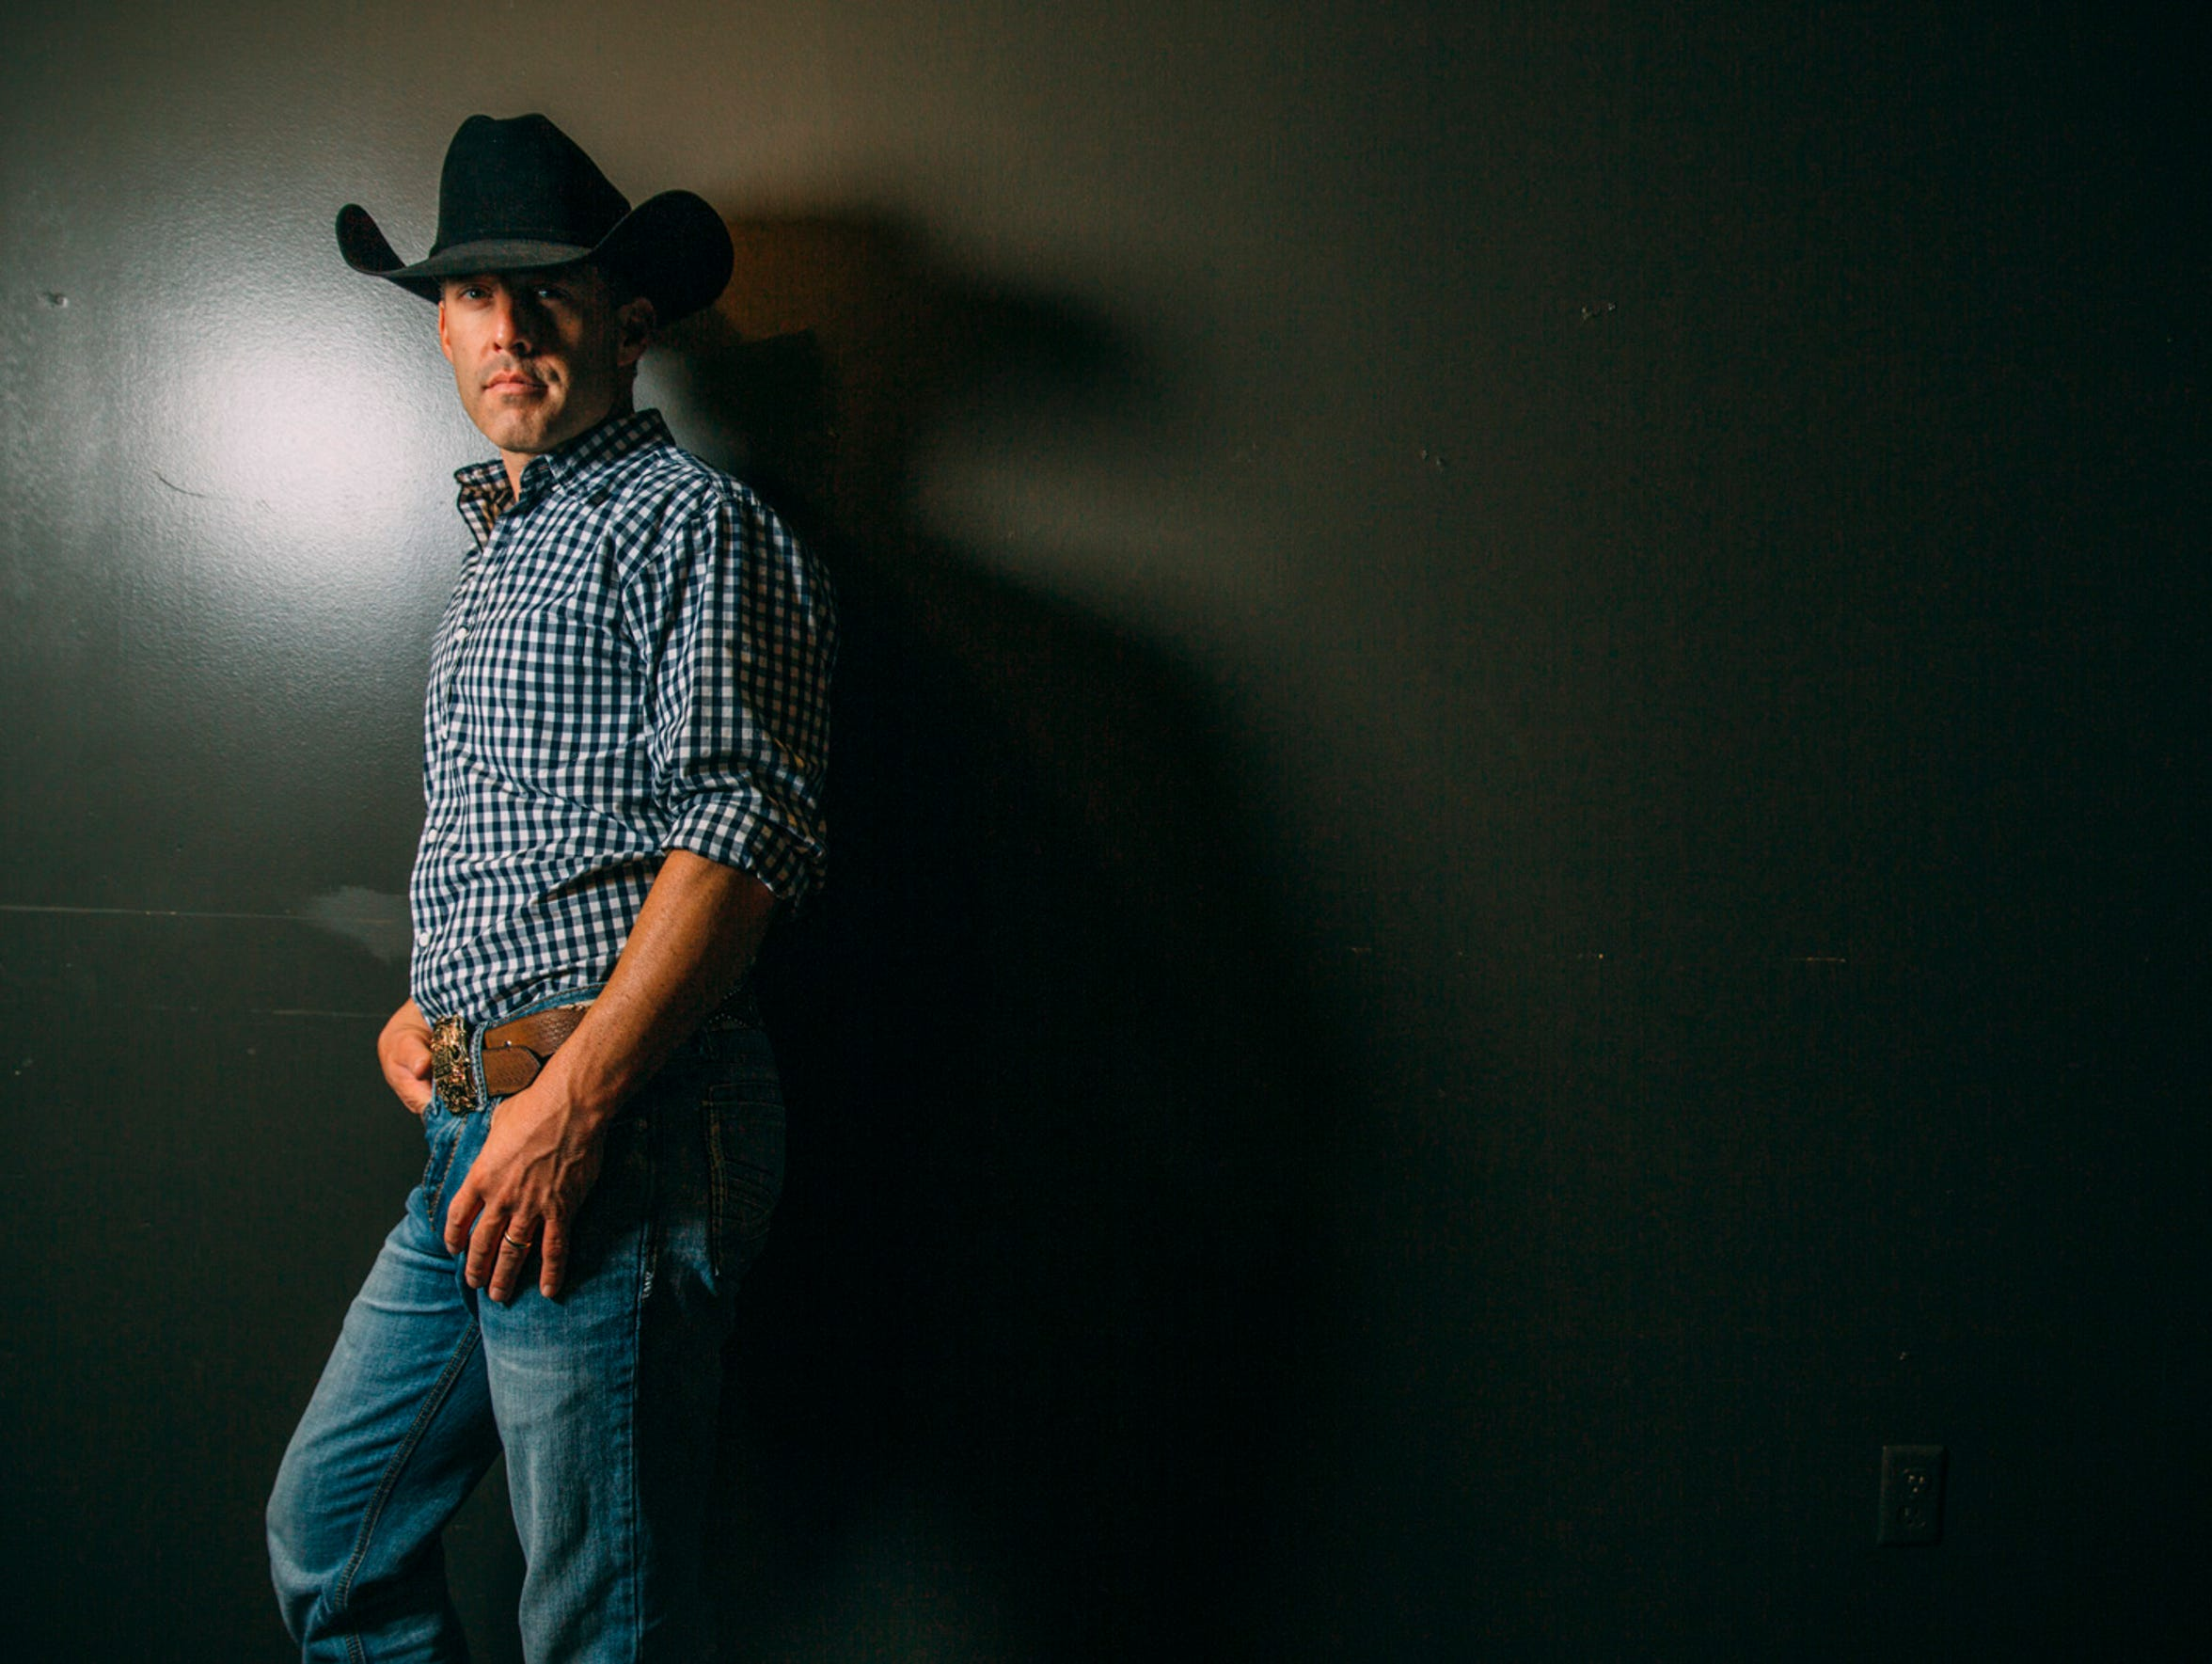 Abilene-based country singer Aaron Watson will keep